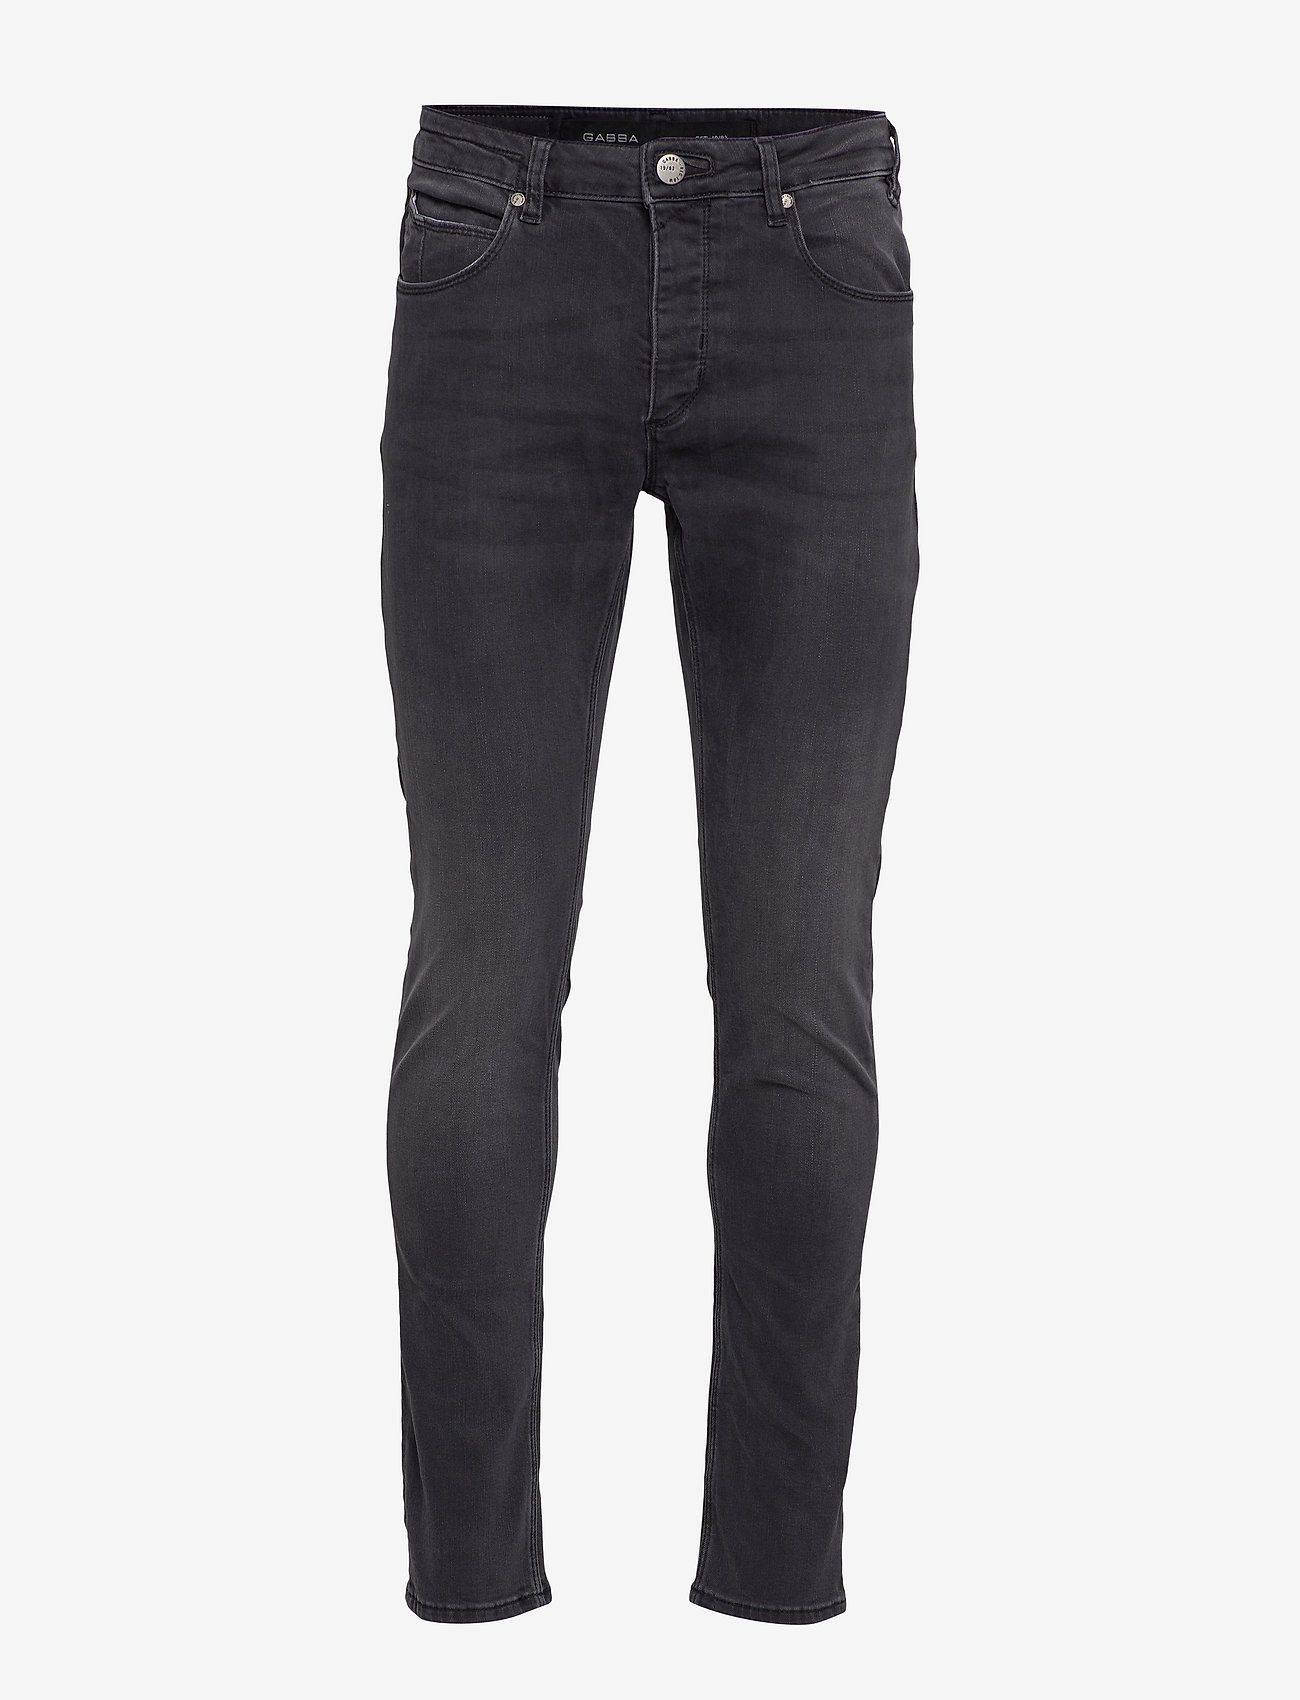 Gabba - Rey Thor Jeans - slim jeans - rs0491 - 0